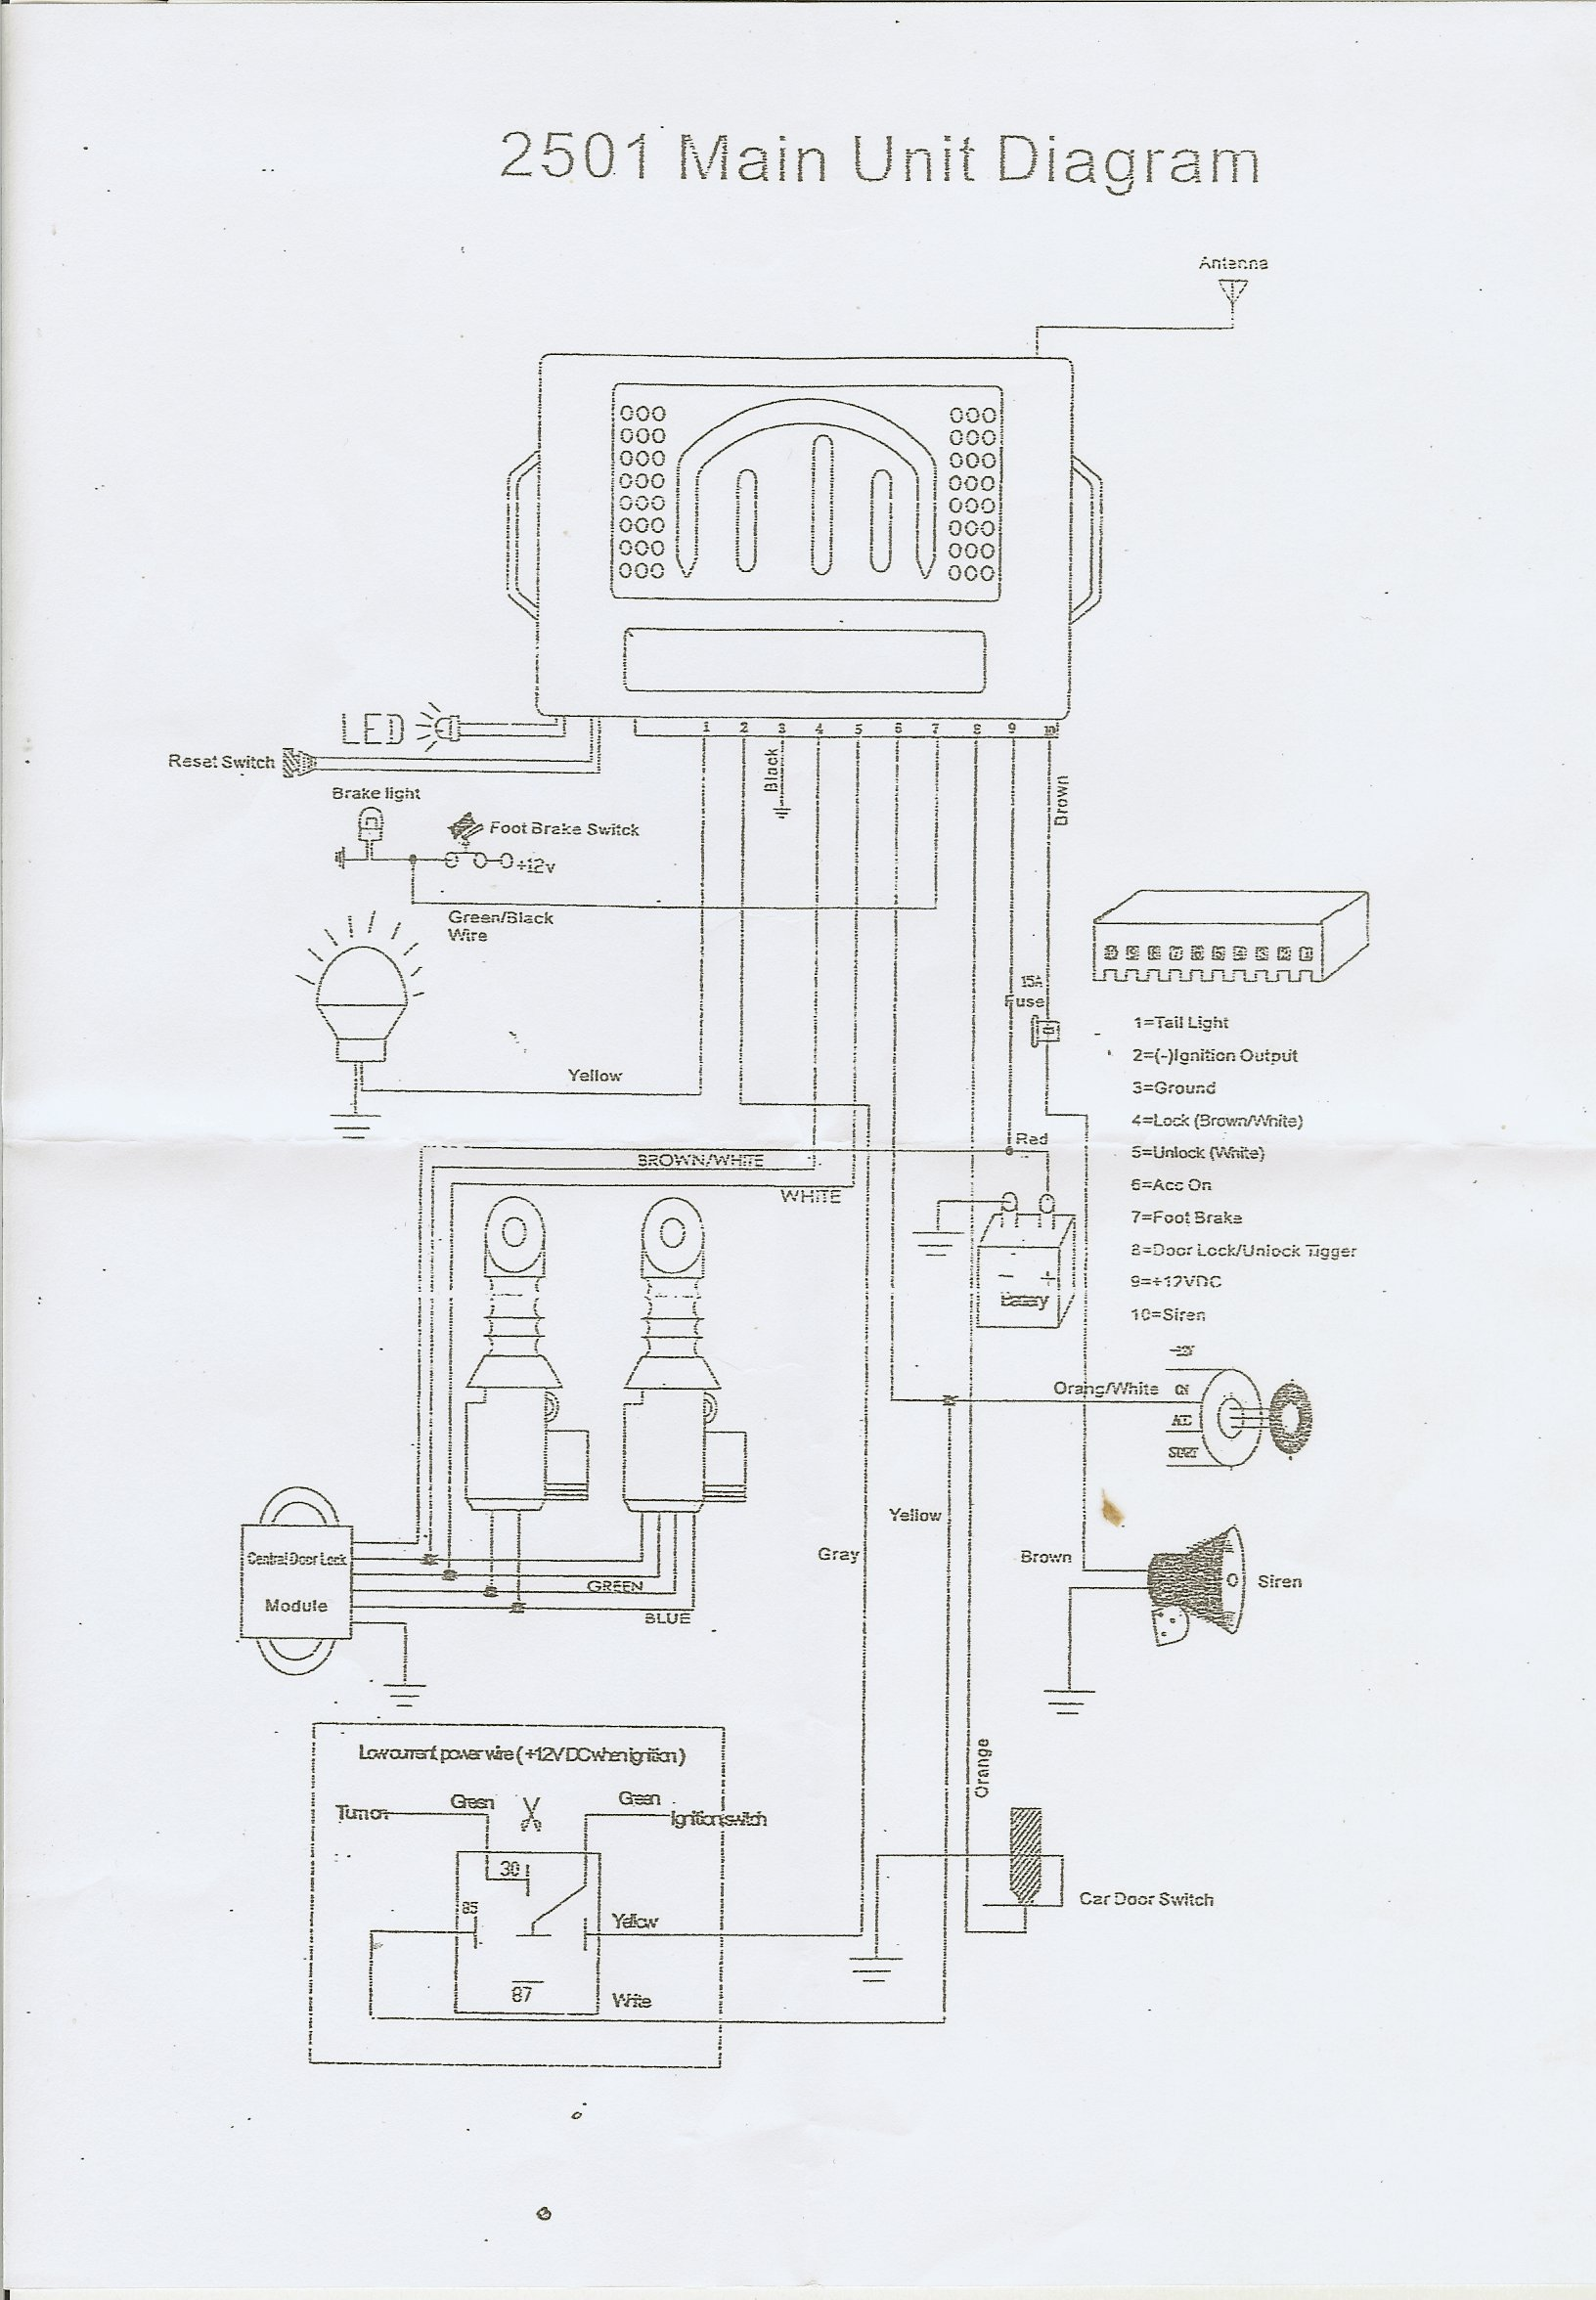 [WLLP_2054]   RR_1272] Central Door Locking Wiring And Circuit Diagram Circuit Wiring  Free Diagram | Ford Ka Central Locking Wiring Diagram |  | Cran Venet Mohammedshrine Librar Wiring 101